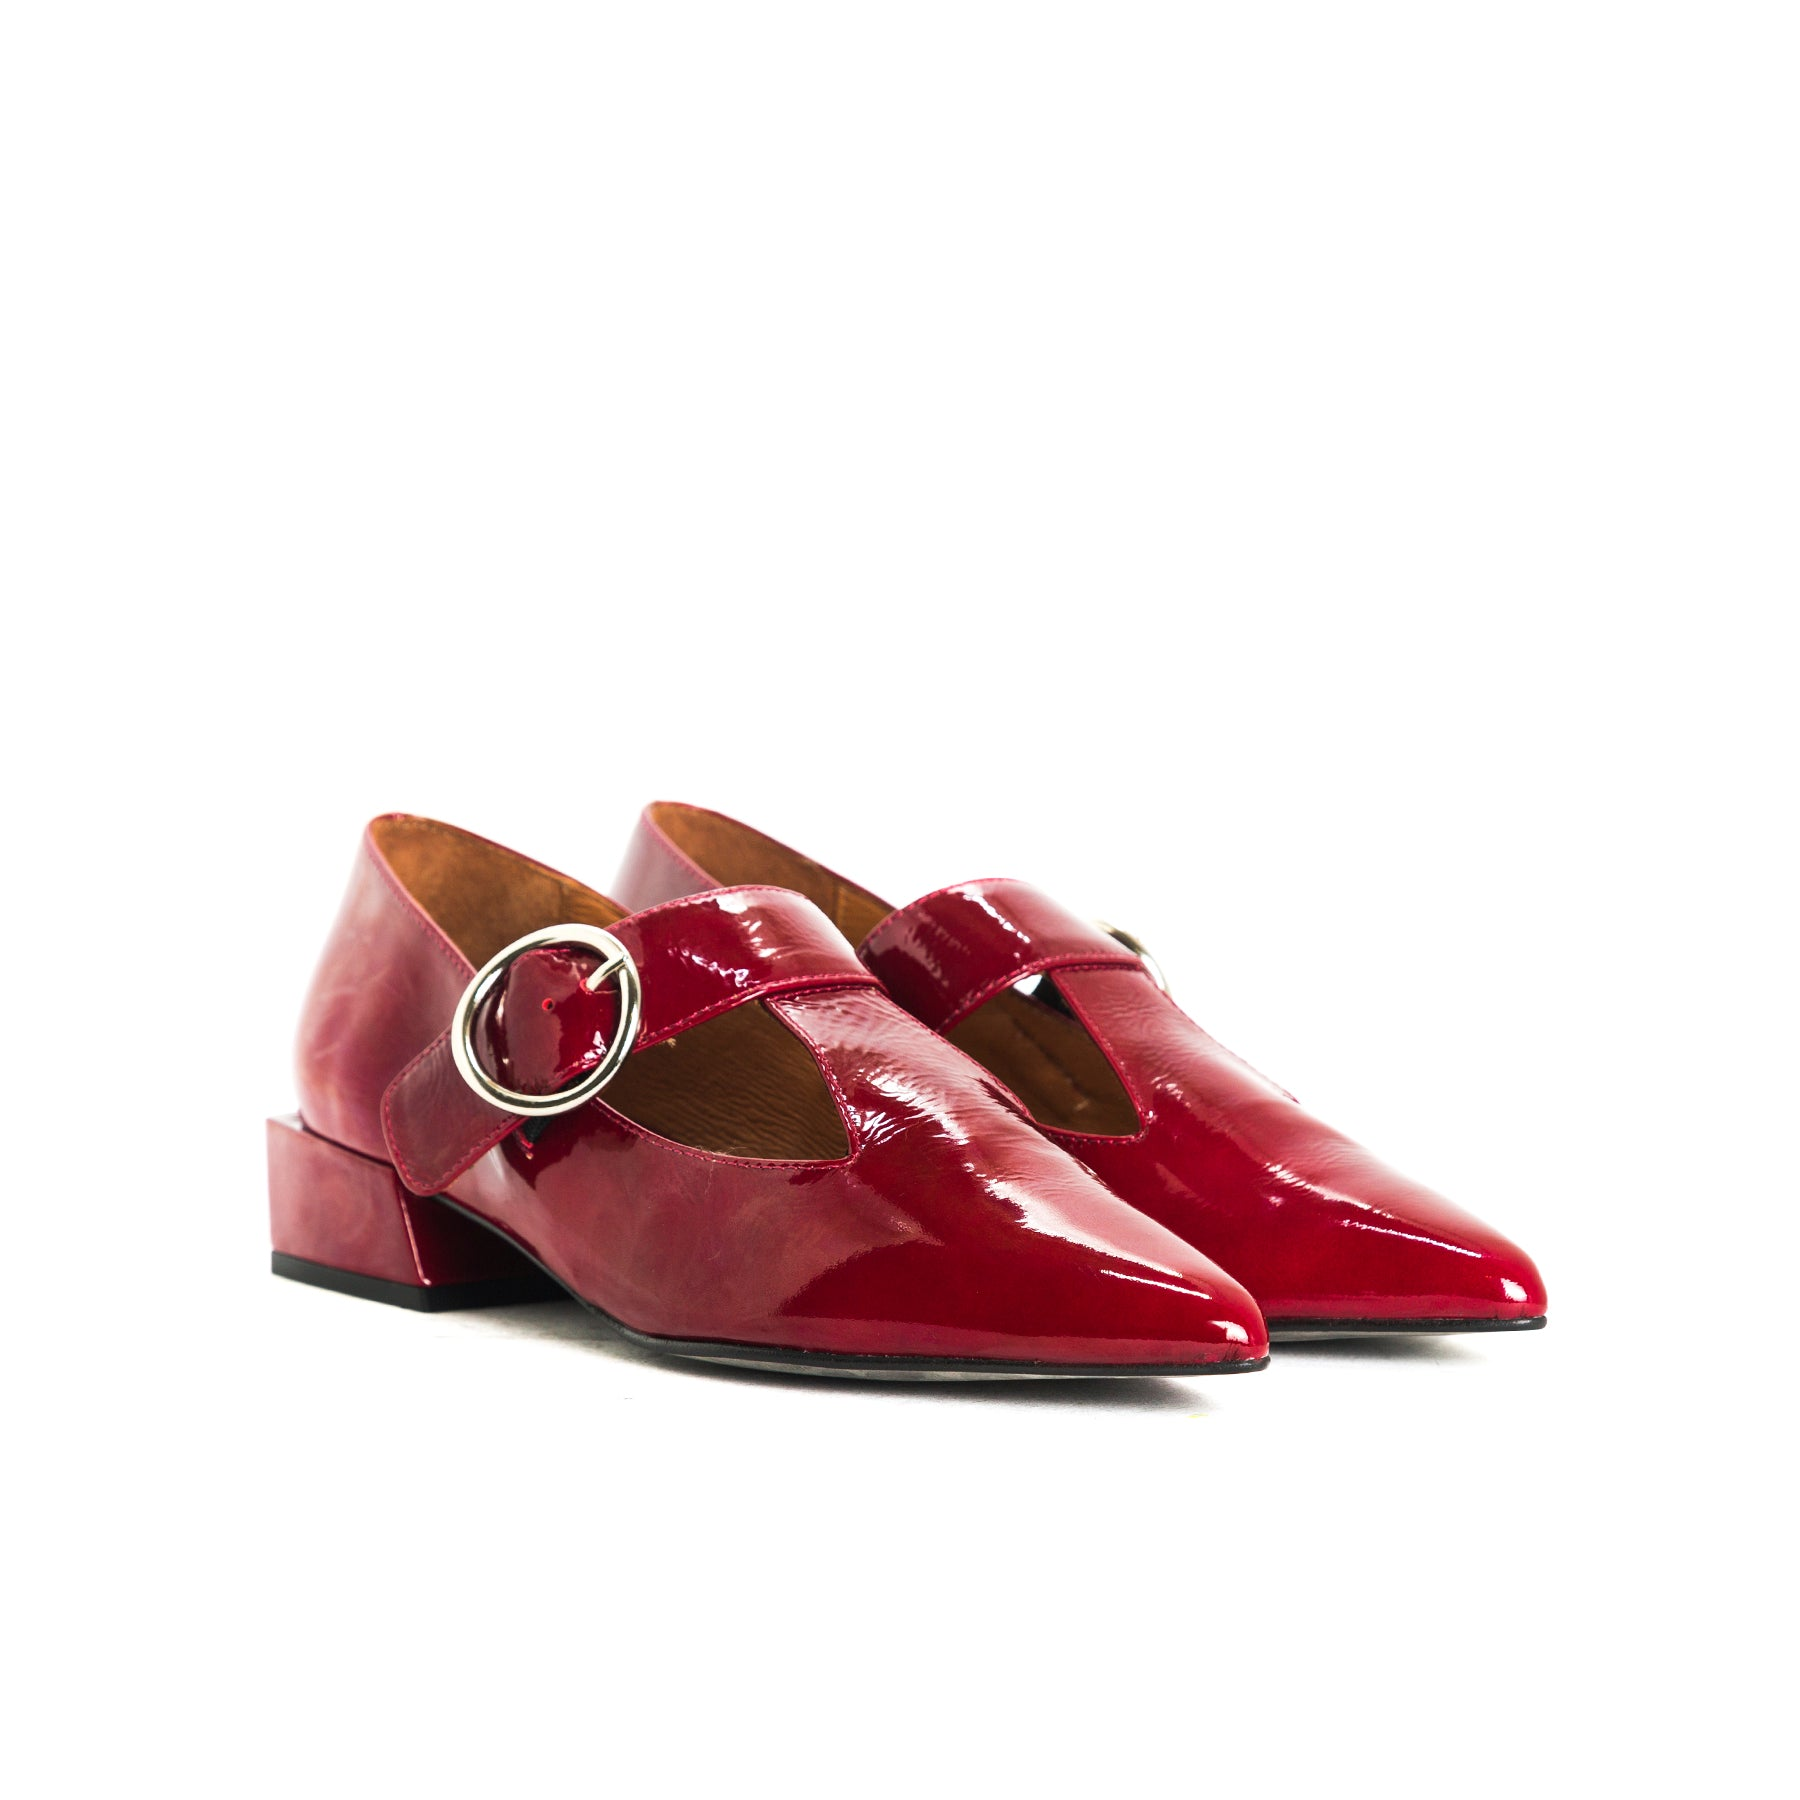 Gilmore Bordo Naplack Shoes